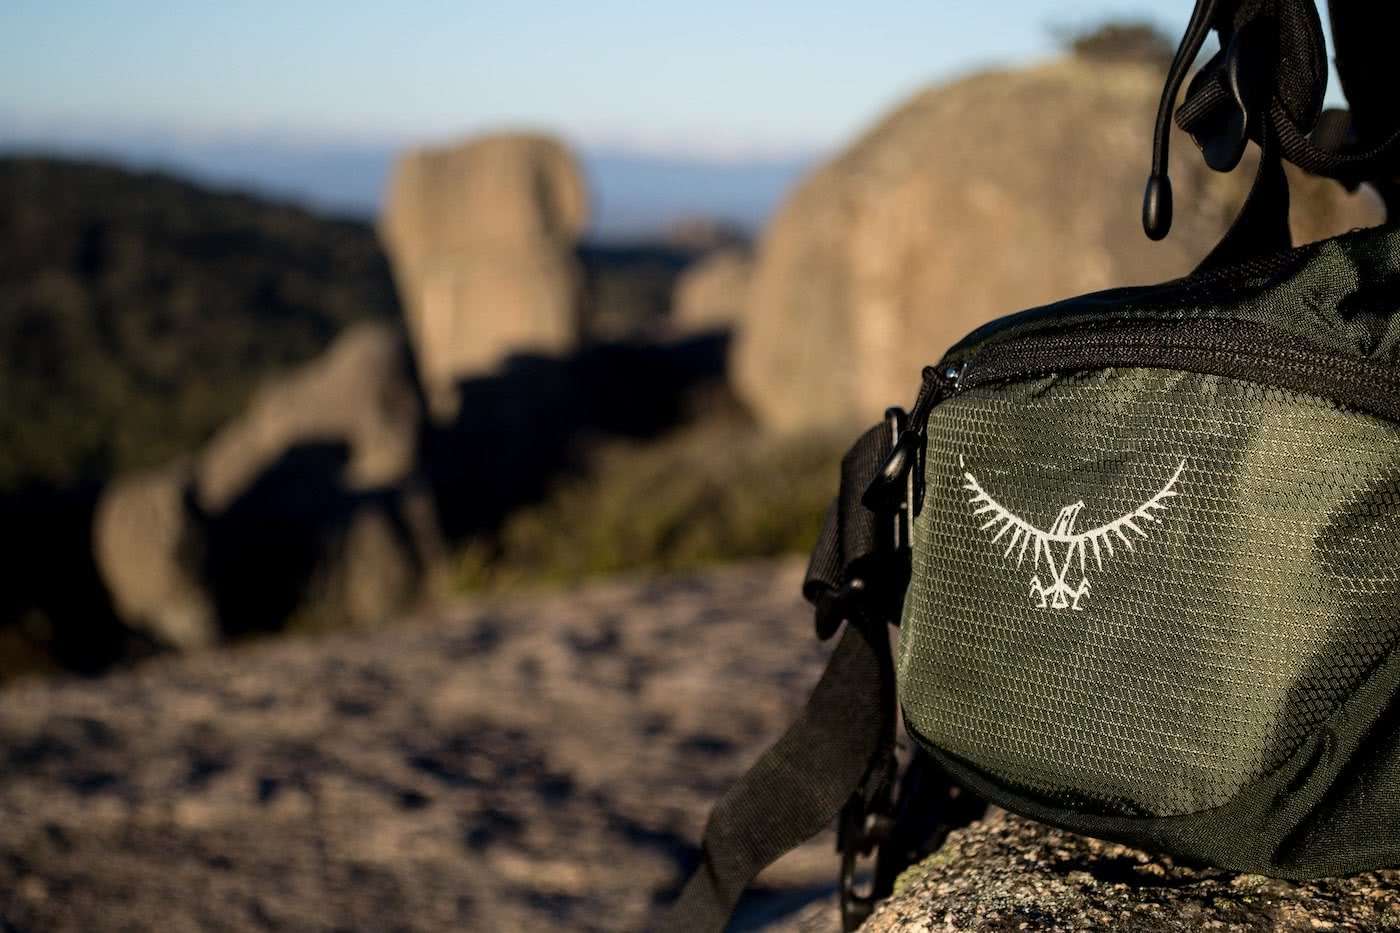 Dan Parkes, Gear review // osprey aether 60ag, Half-packed in the Never Never